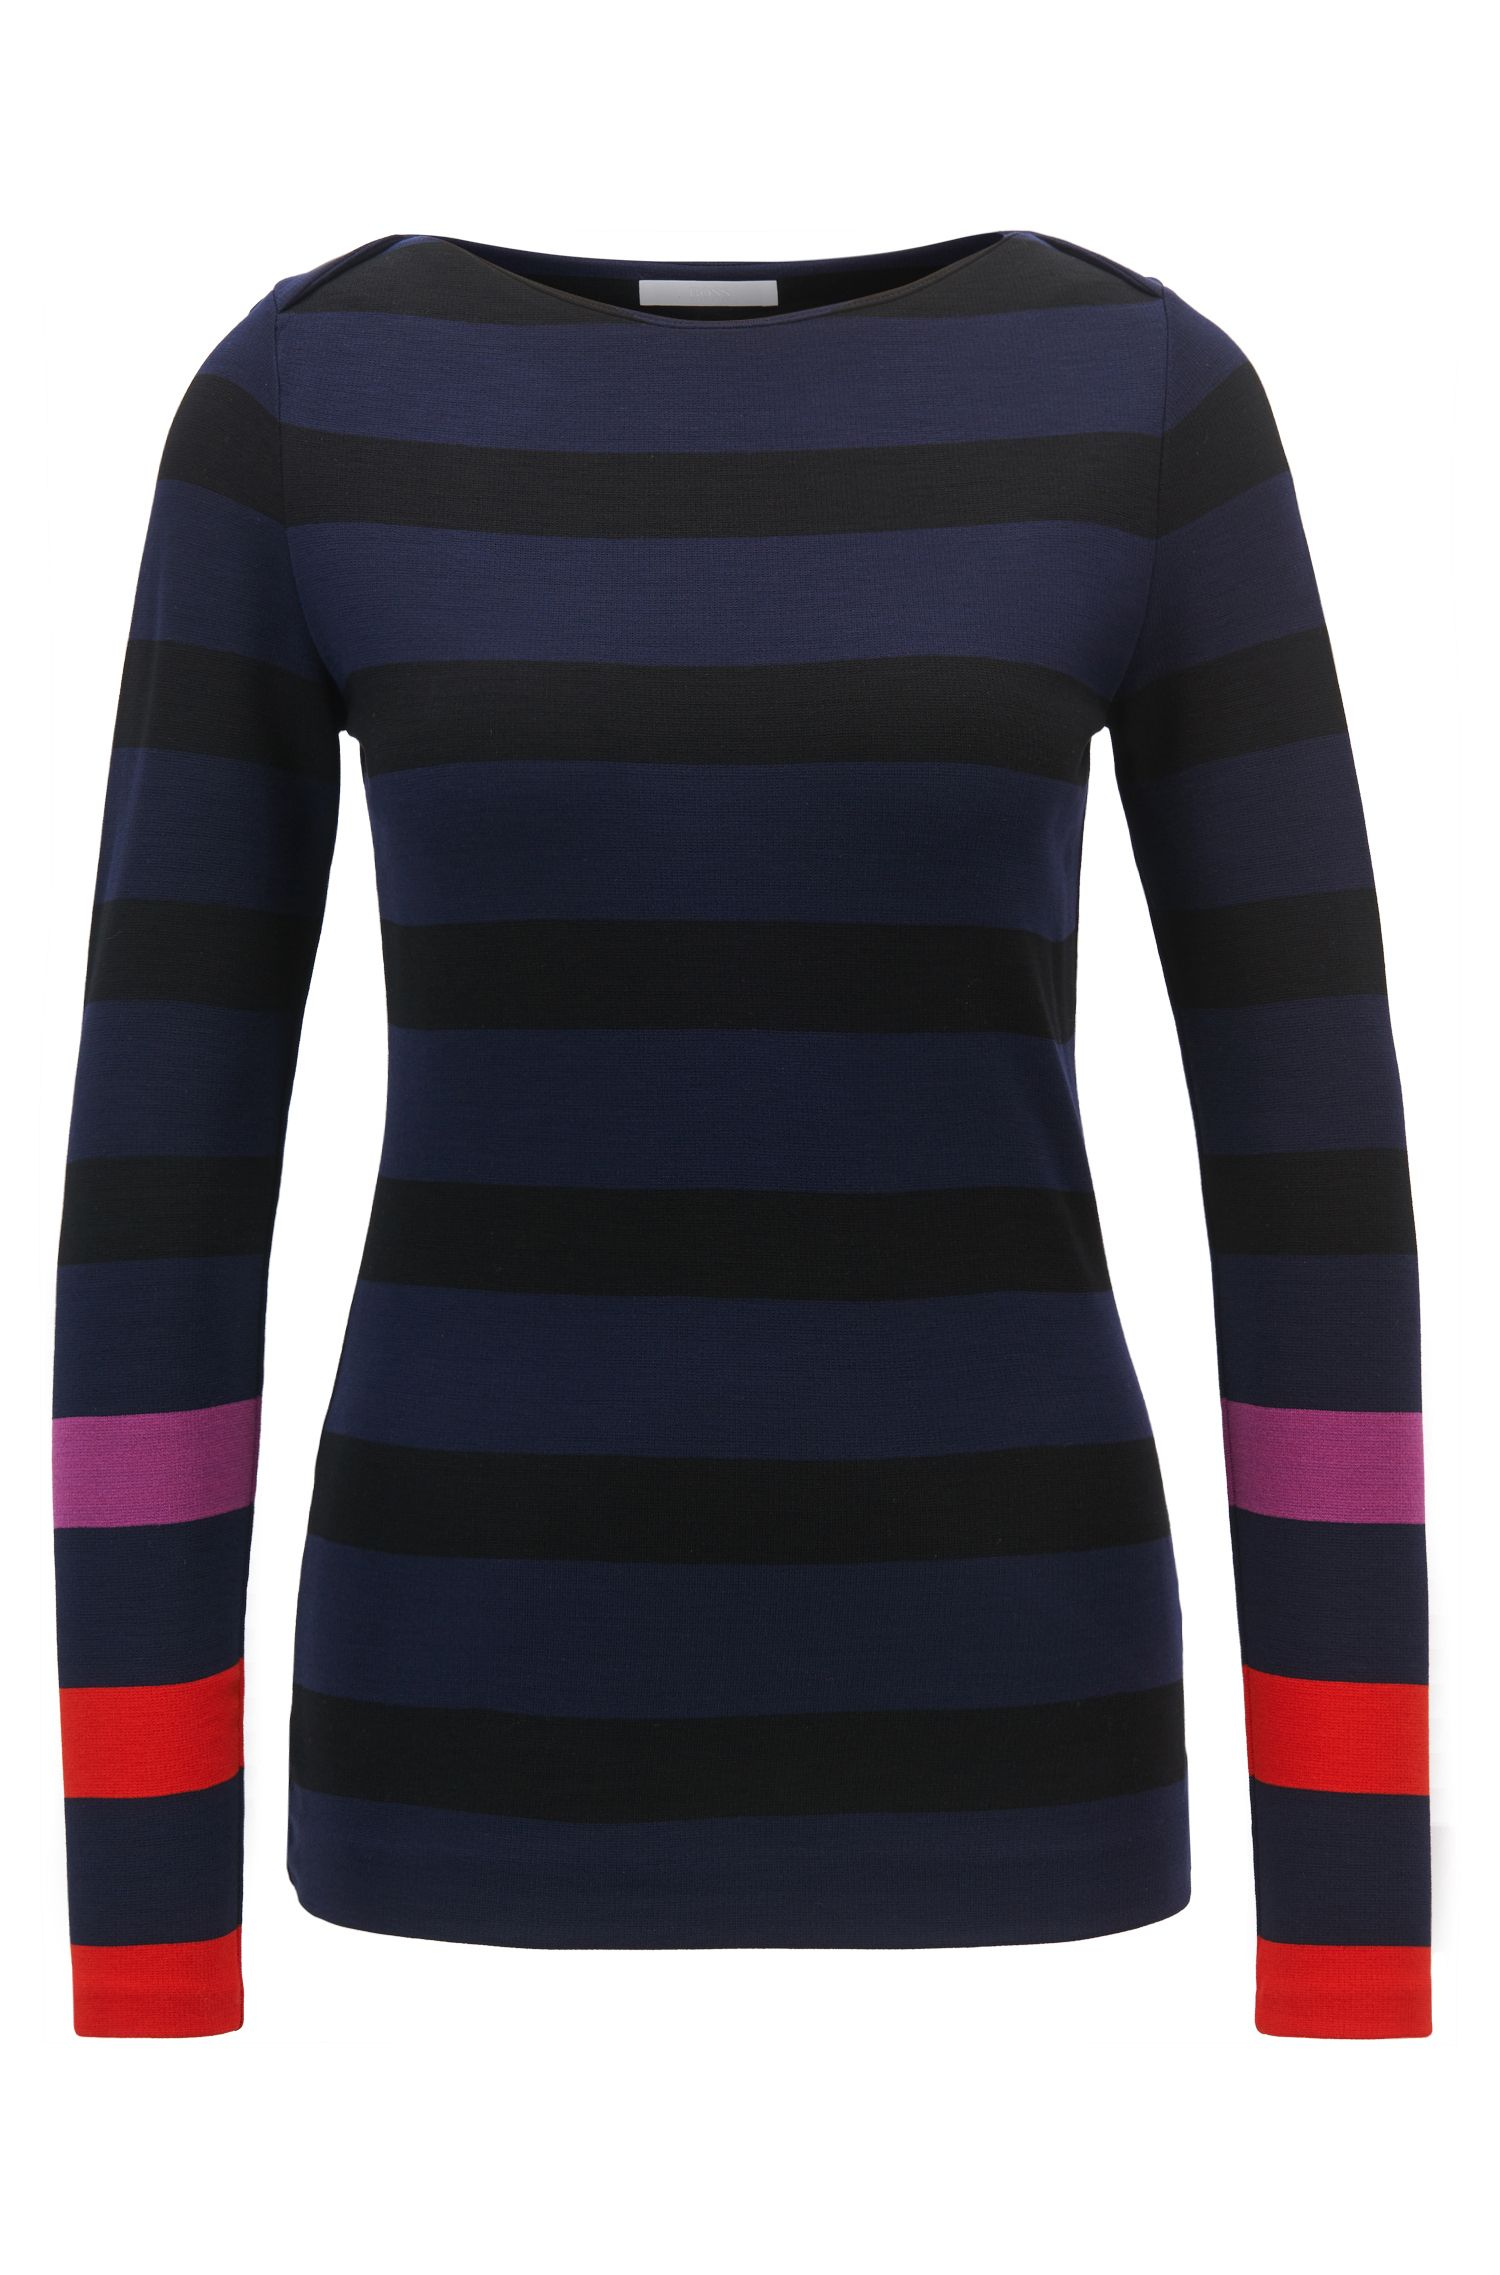 Striped Sweater | Elive, Patterned